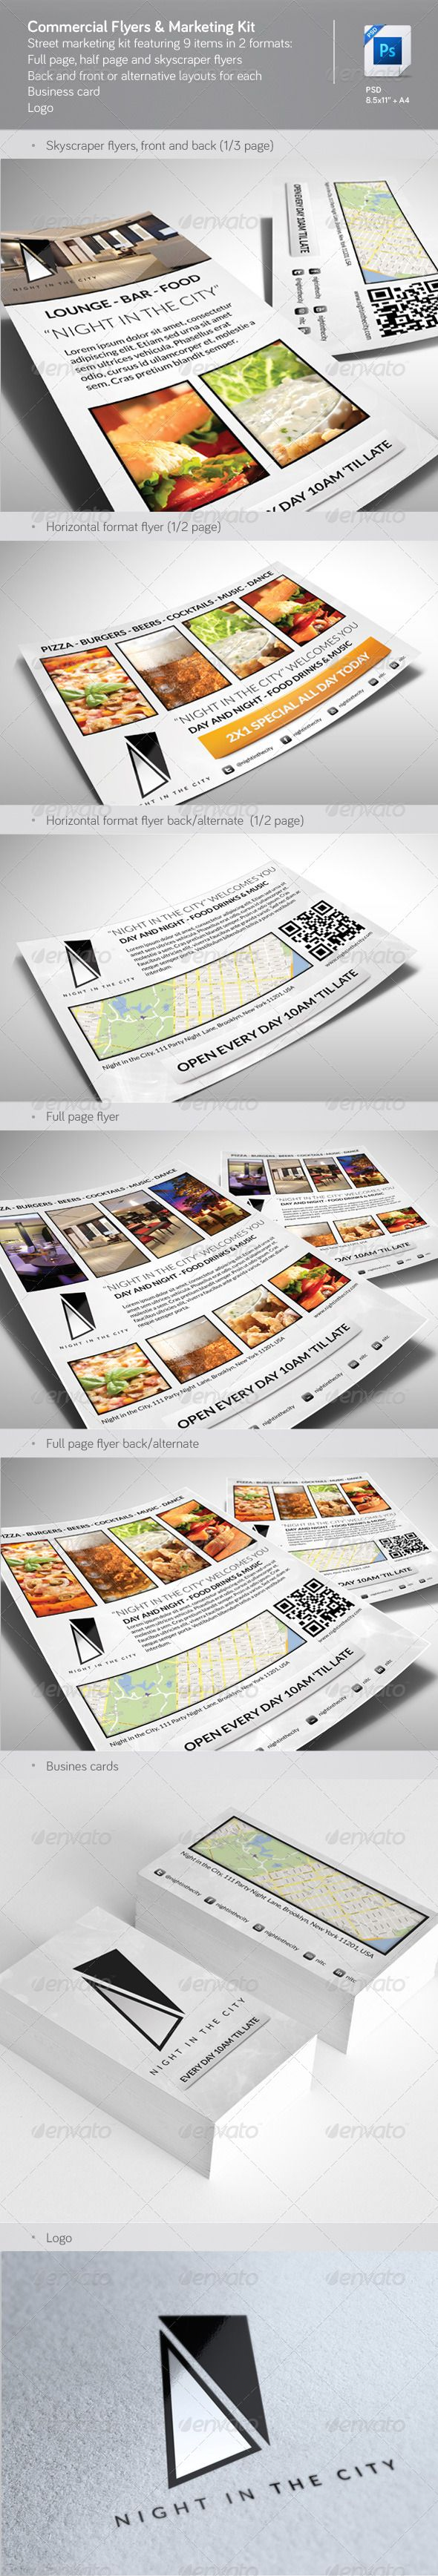 Best Print Templates Images On   Print Templates